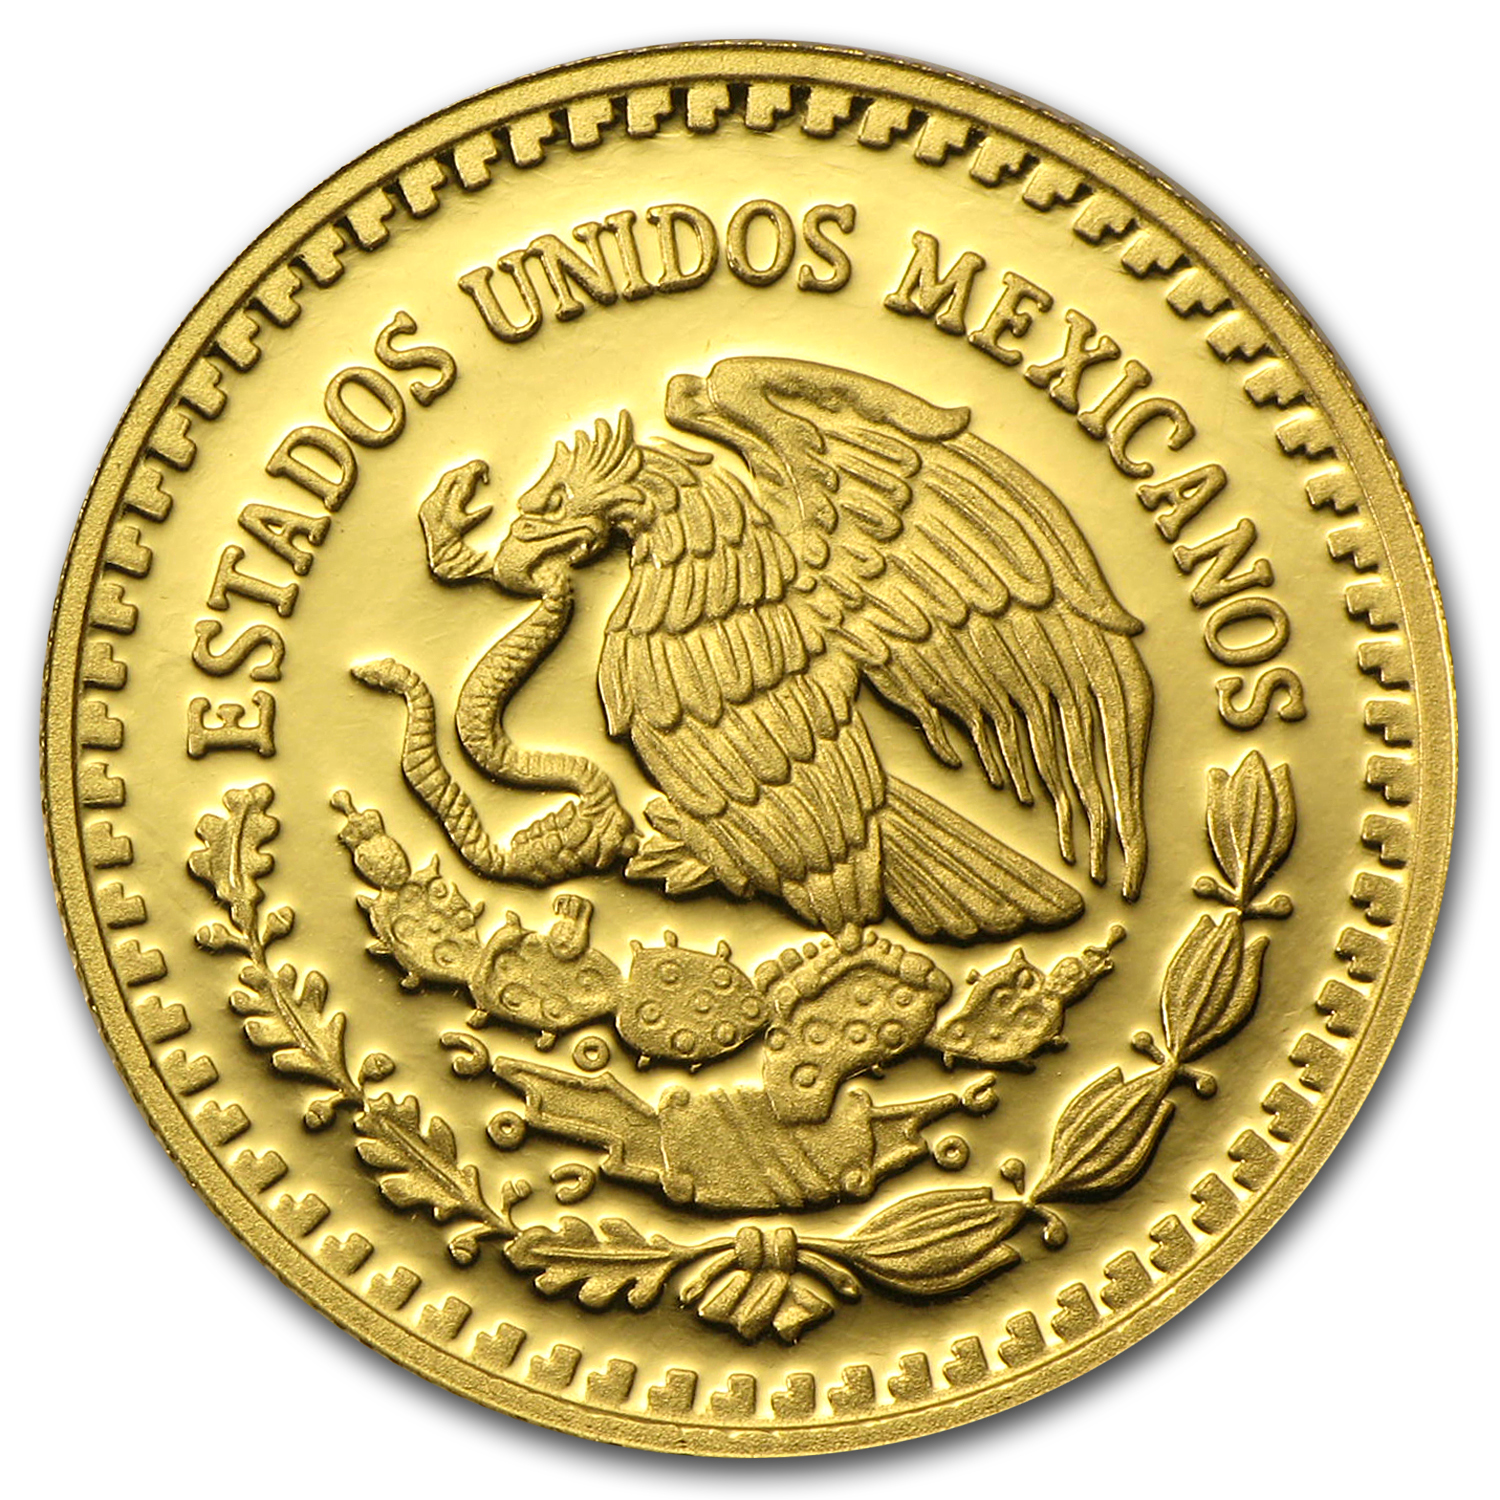 2013 Mexico 1/4 oz Proof Gold Libertad